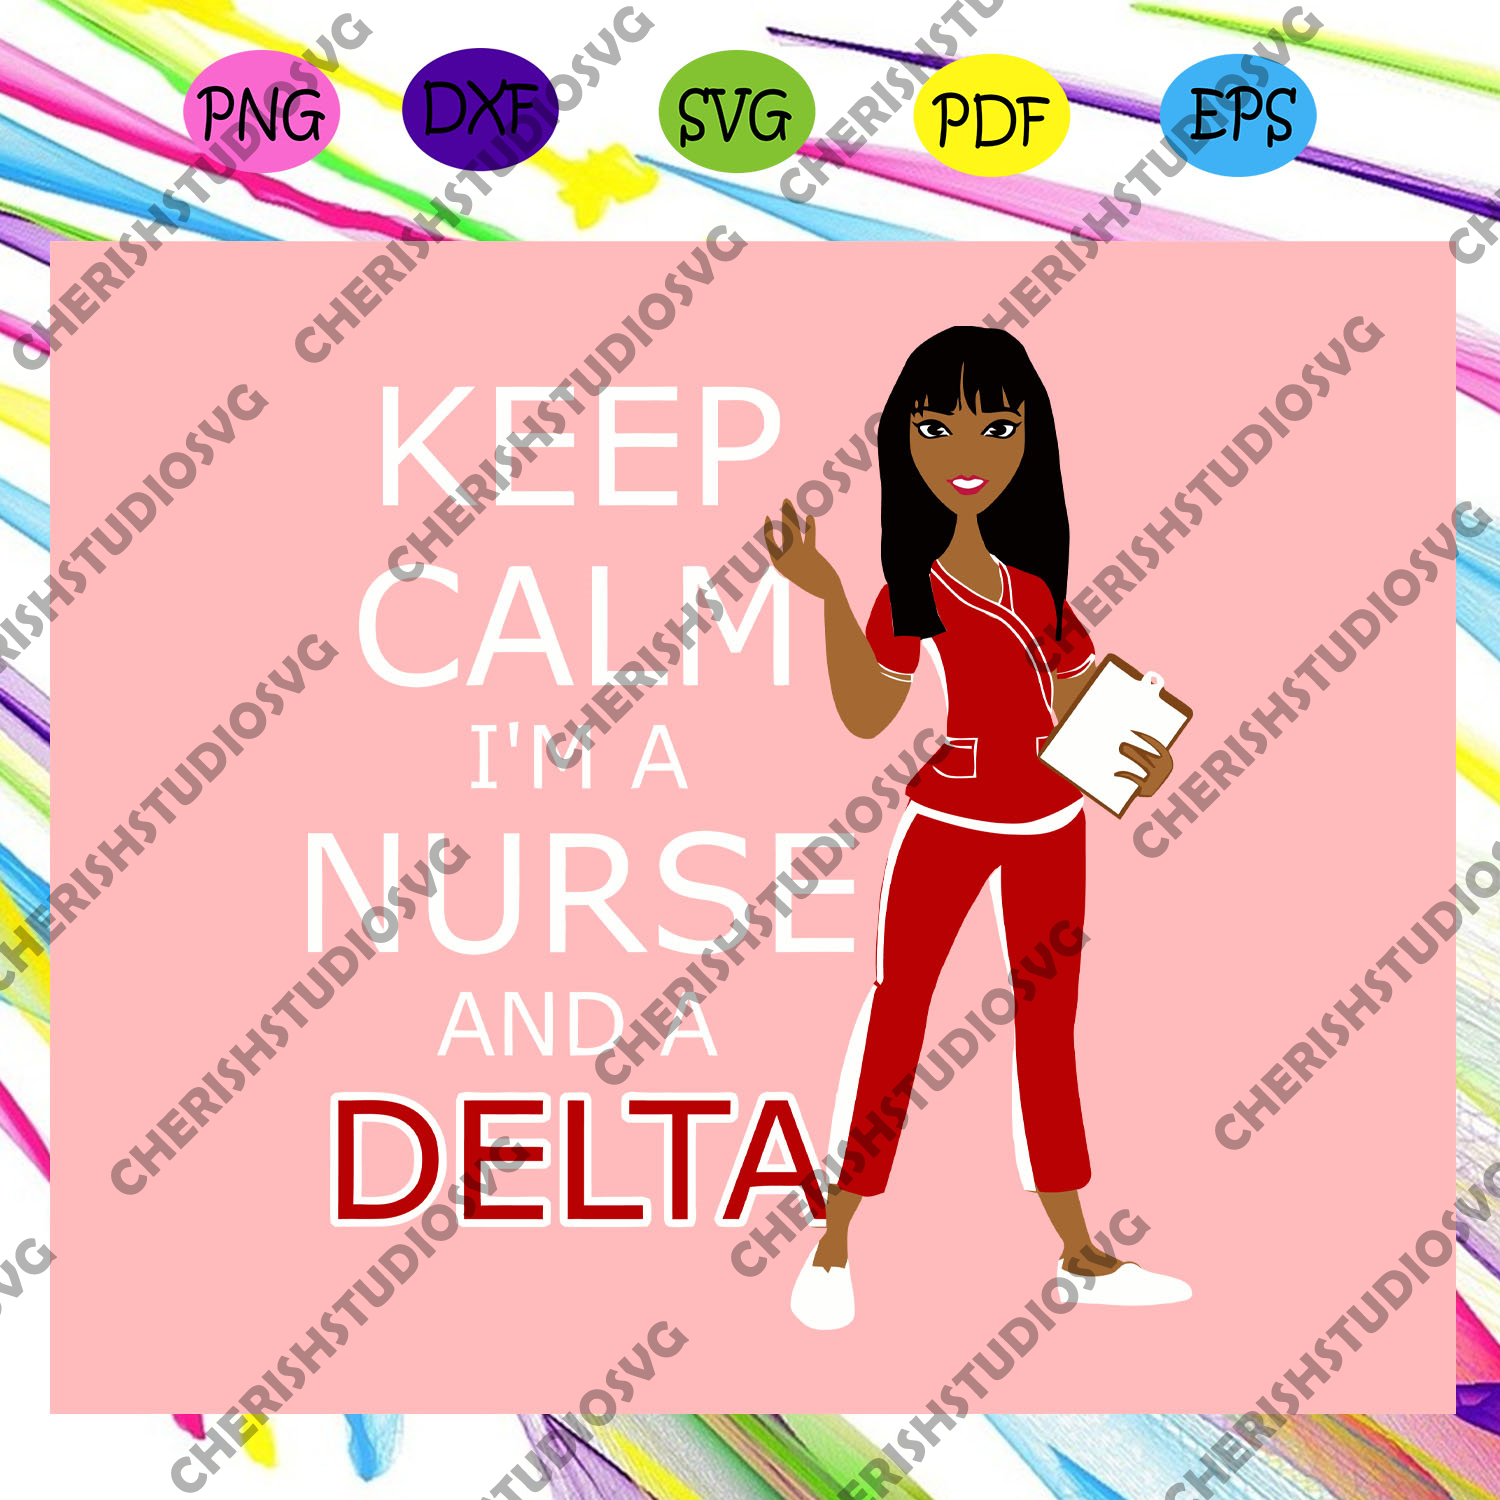 Keep calm i'm a nurse and a delta, Delta sigma theta, sigma theta gifts, sigma theta svg, theta sigma shirt, Sigma sorority svg, Sigma sorority gift, sigma theta sign, For Silhouette, Files For Cricut, SVG, DXF, EPS, PNG Instant Download